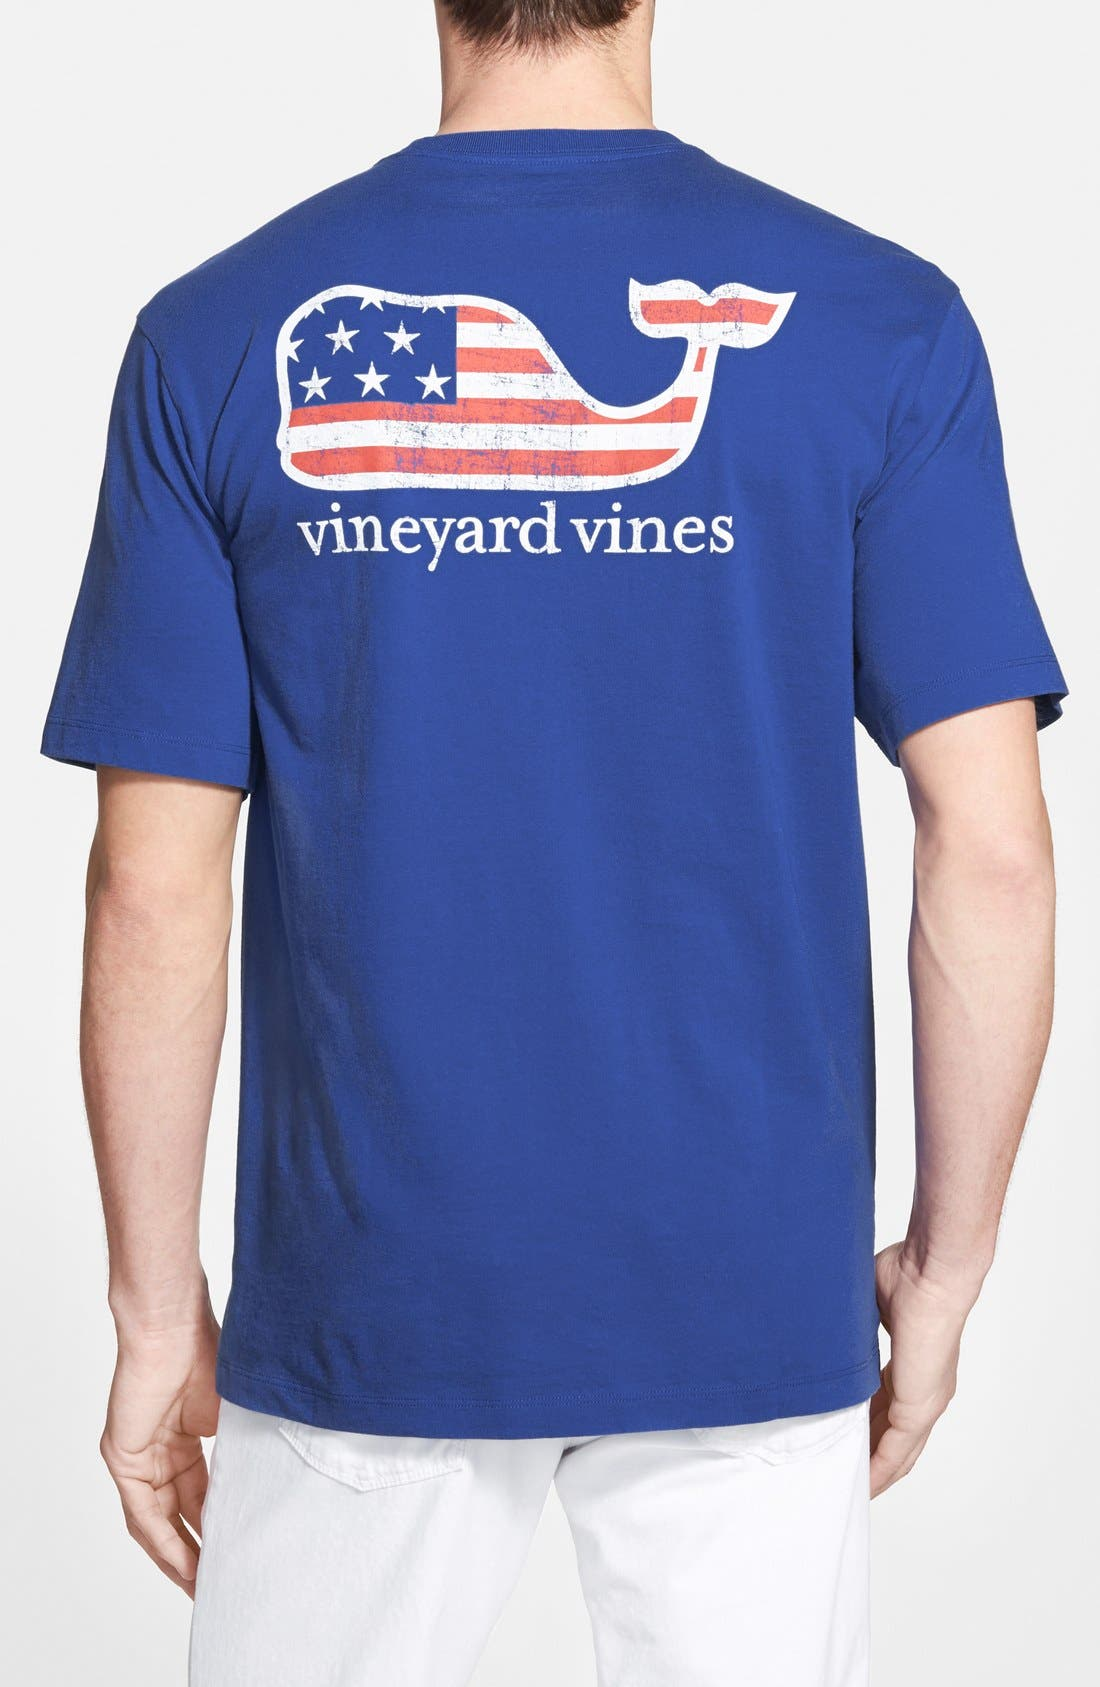 Alternate Image 1 Selected - Vineyard Vines 'American Flag Whale' Graphic T-Shirt